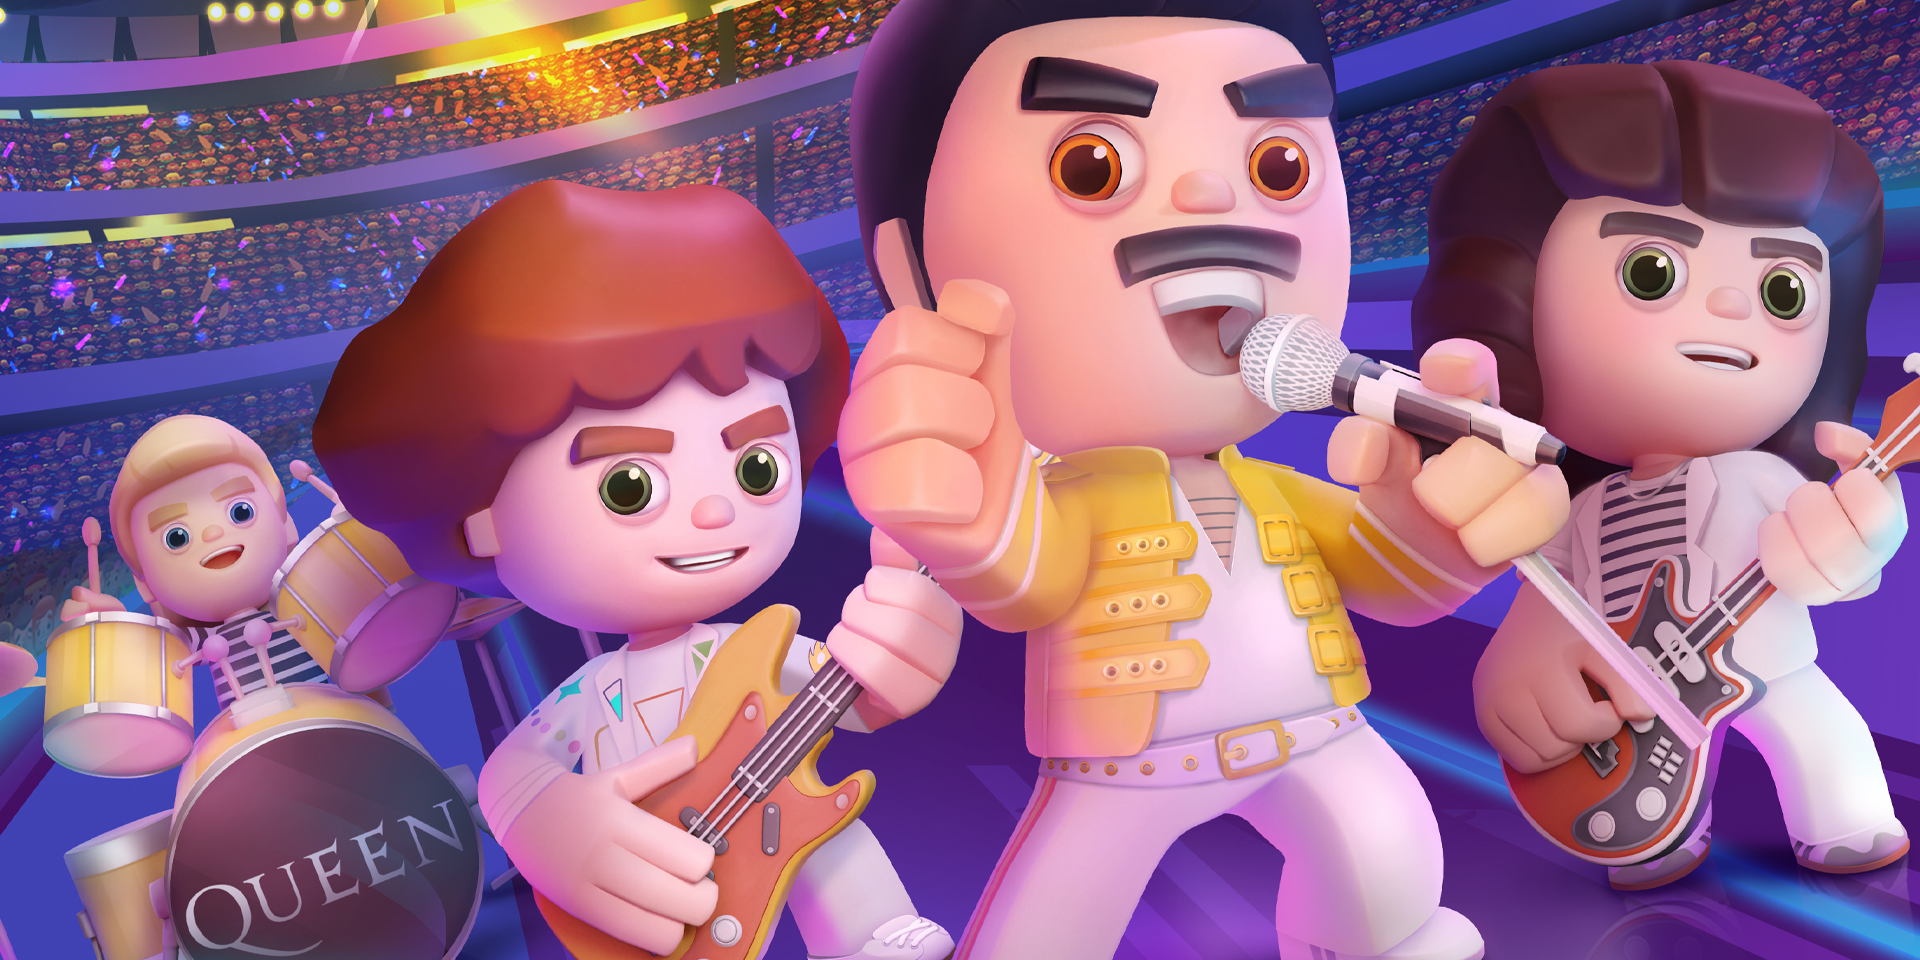 Queen launch official rhythm mobile game 'Rock Tour'